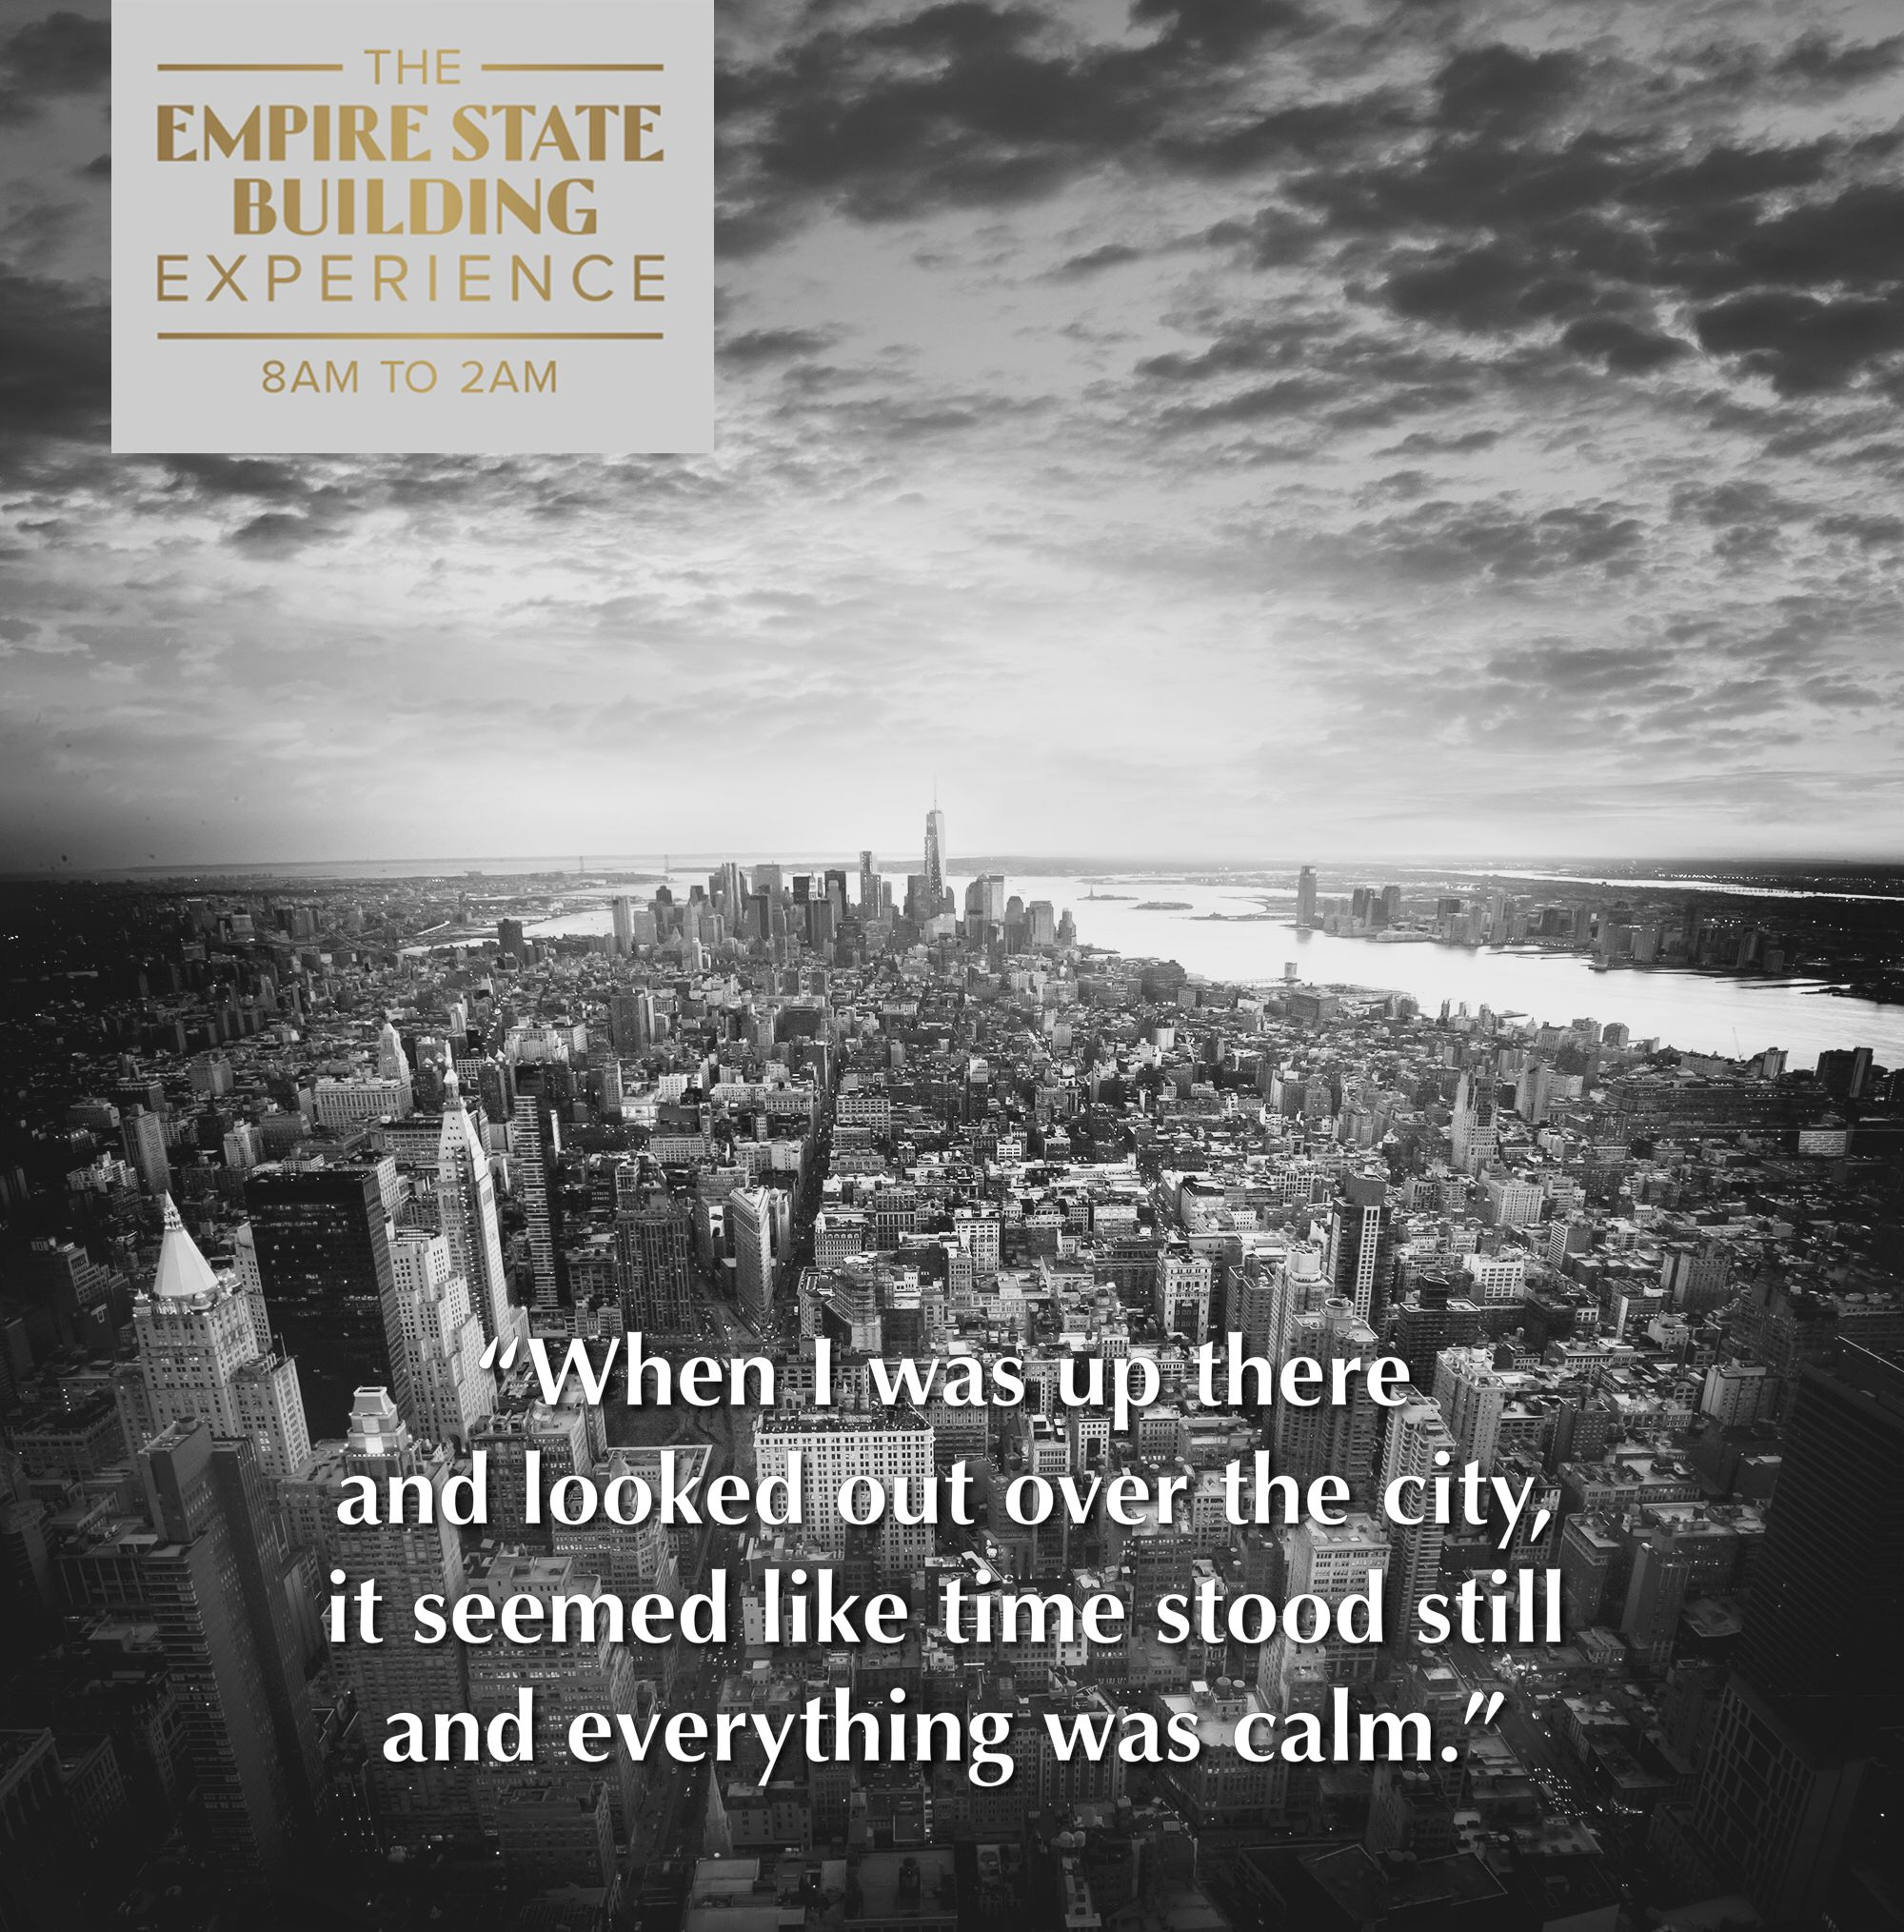 Quotes About New York City: New York City Looks A Little Different From The Empire